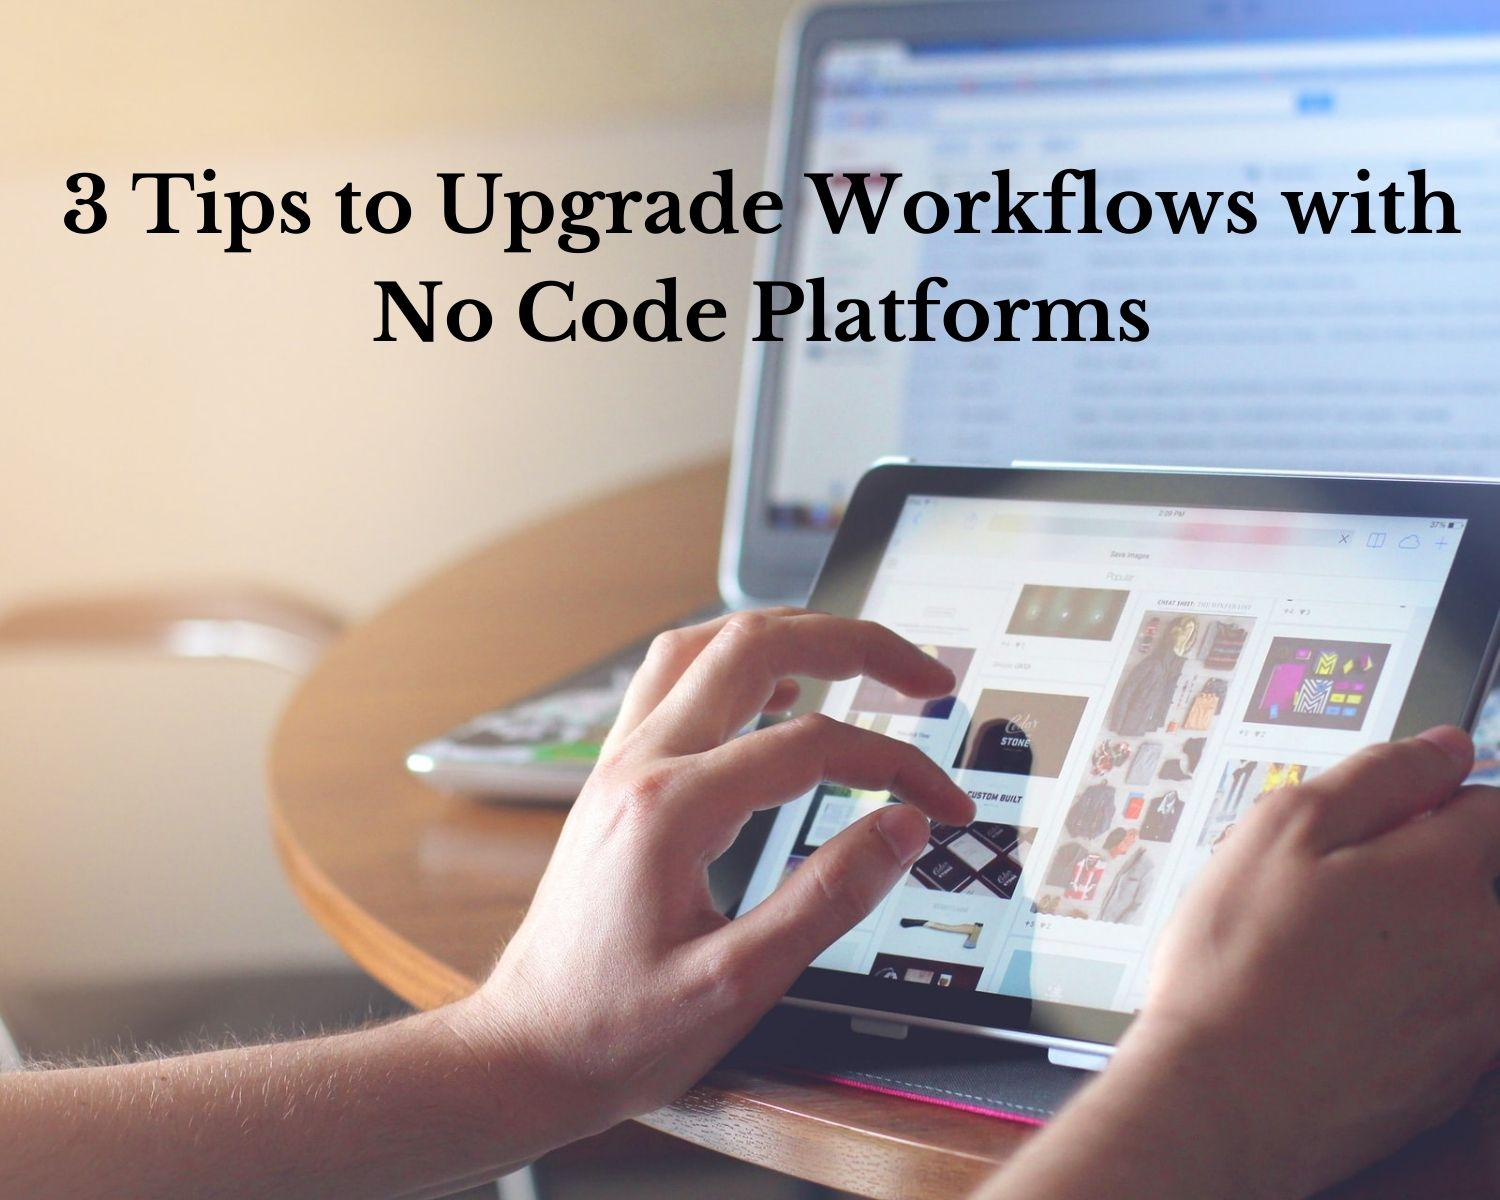 3 Tips to Upgrade Workflows with No Code Platforms